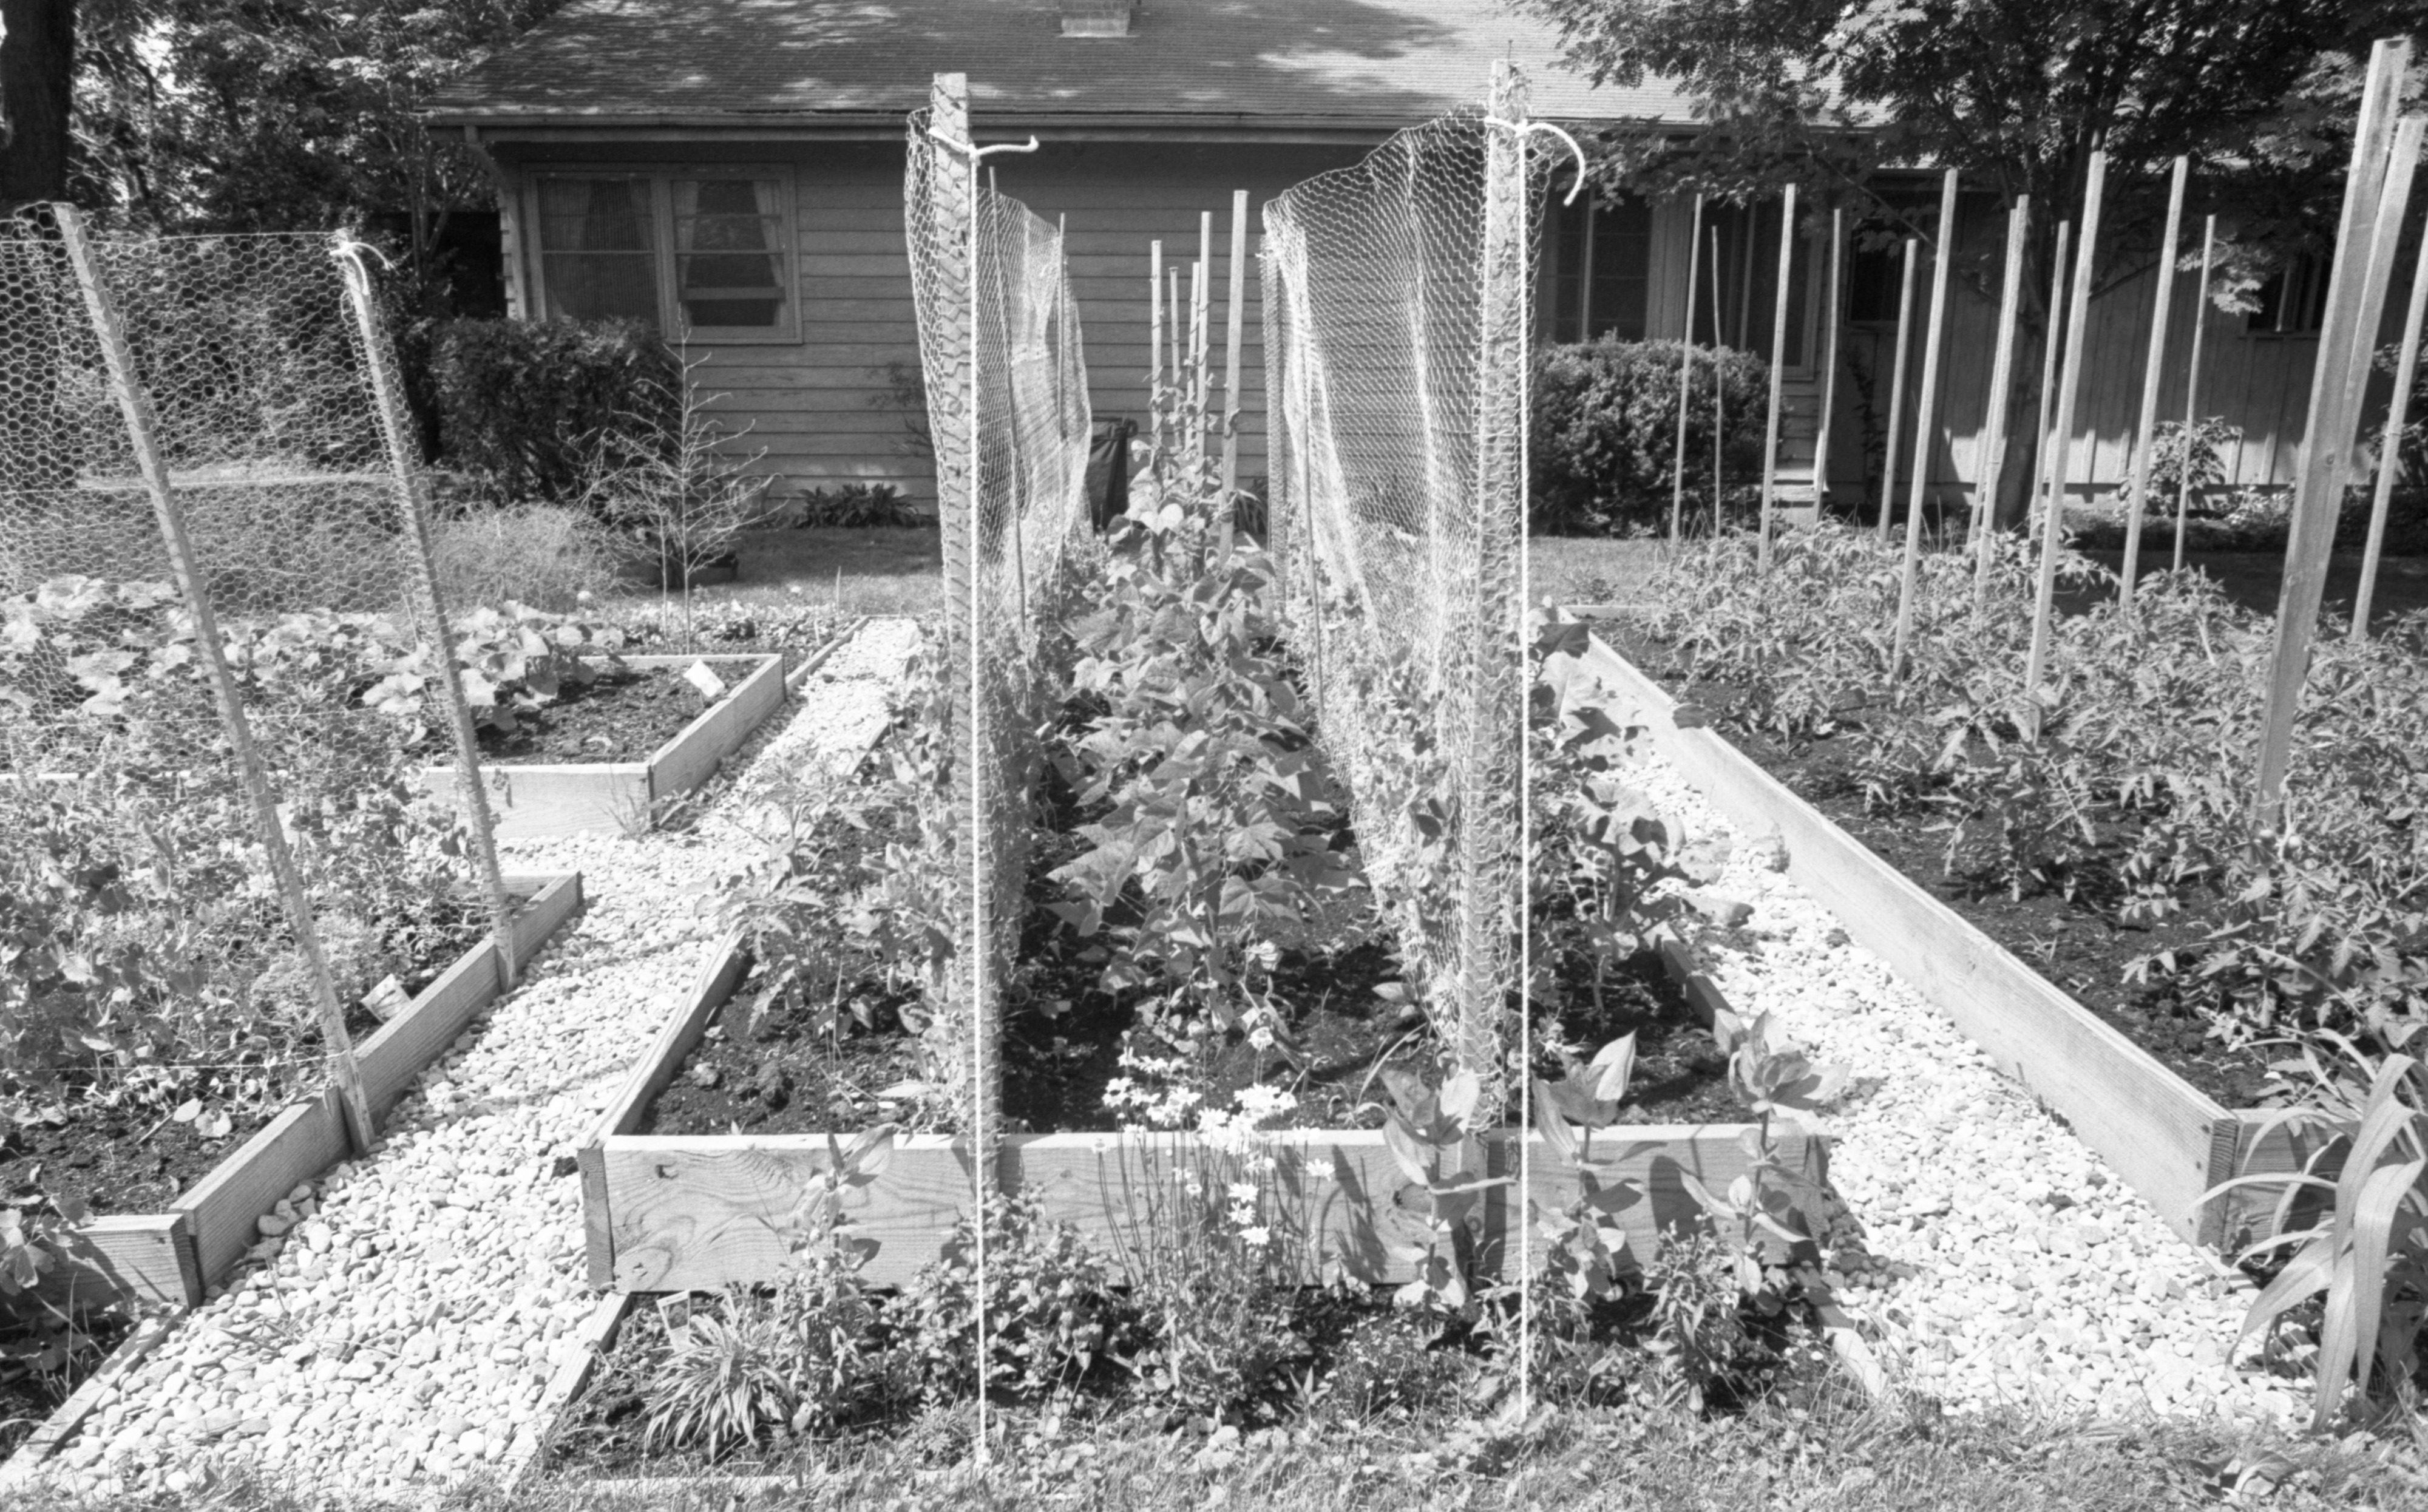 John & Marj Roth's Vegetable Gardens, June 1984 image